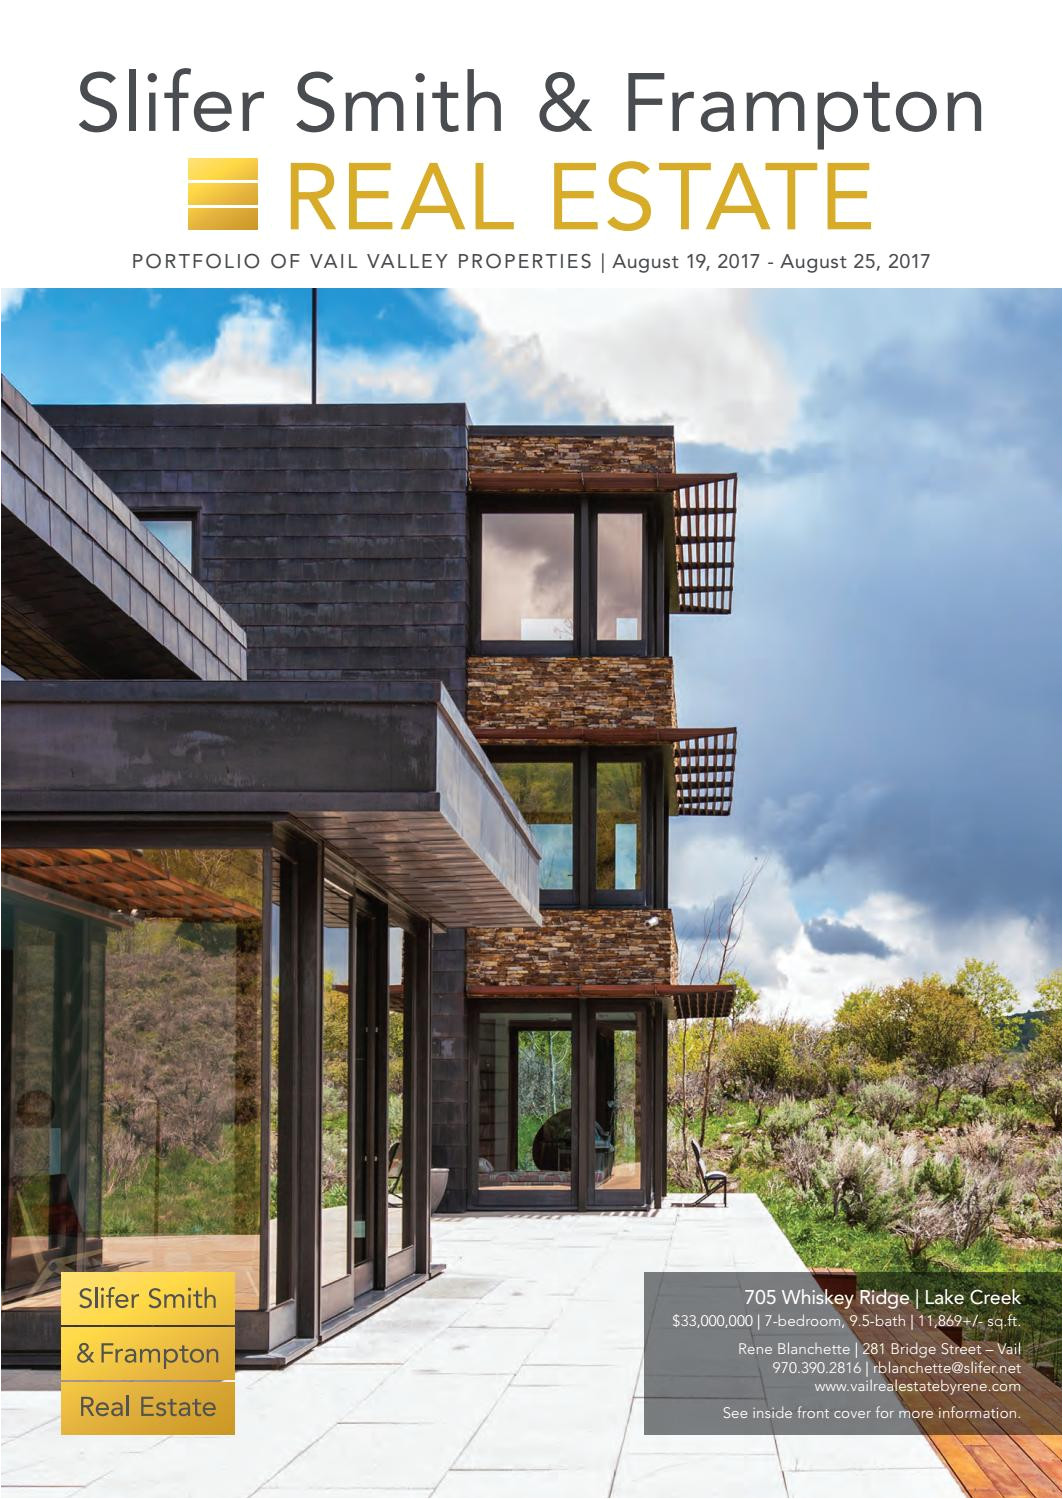 slifer smith frampton real estate portfolio by slifer smith frampton real estate issuu